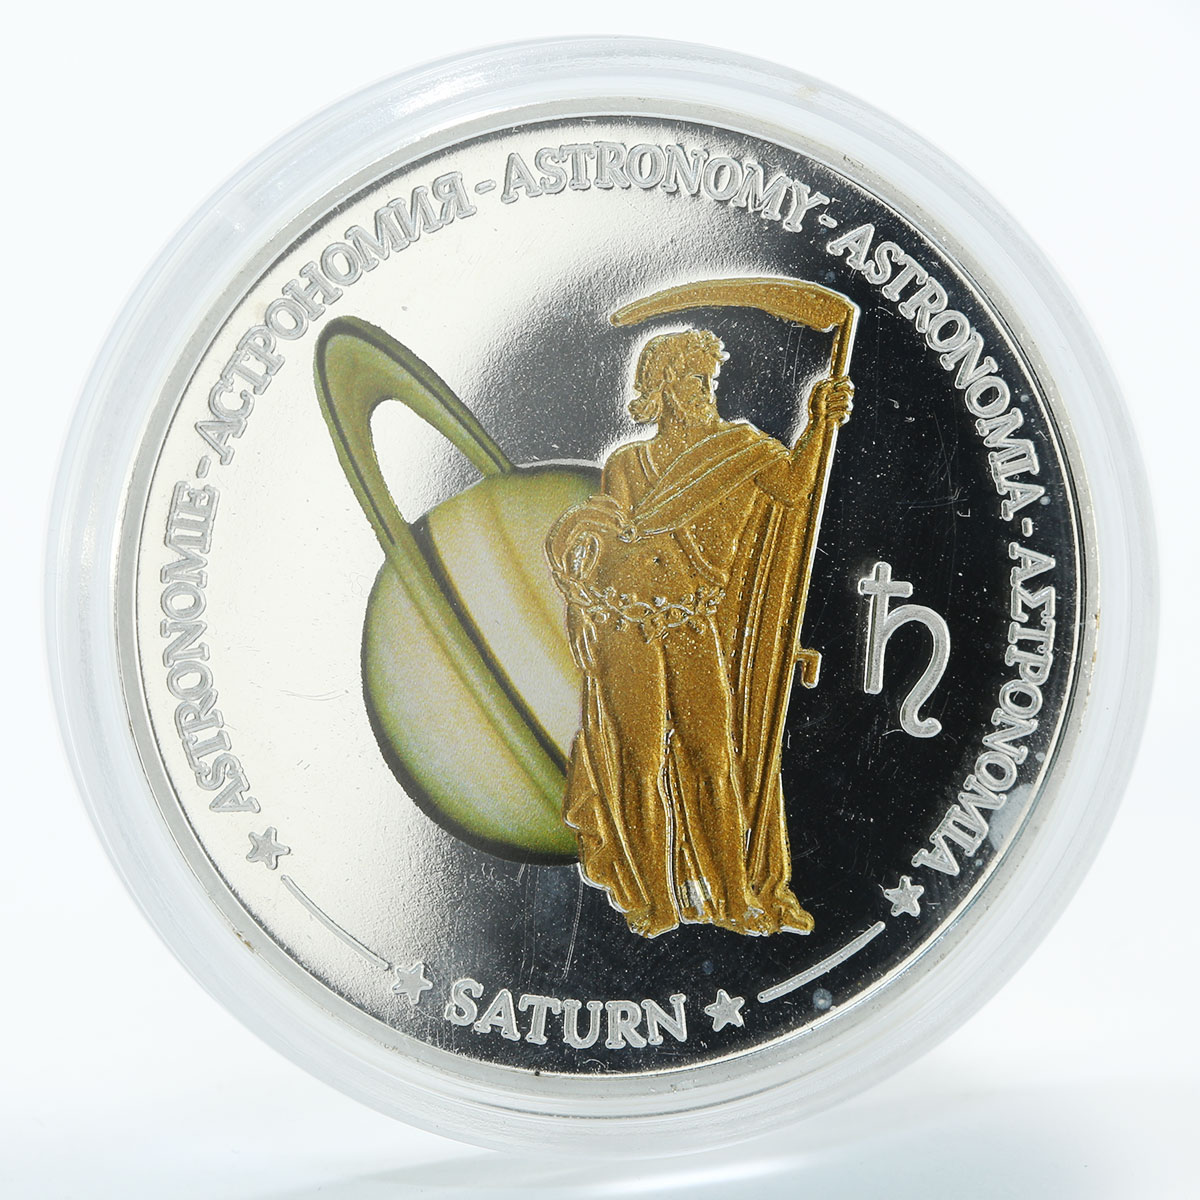 Fiji 1 dollar Astronomy Saturn proof copper silverplated coin 2011